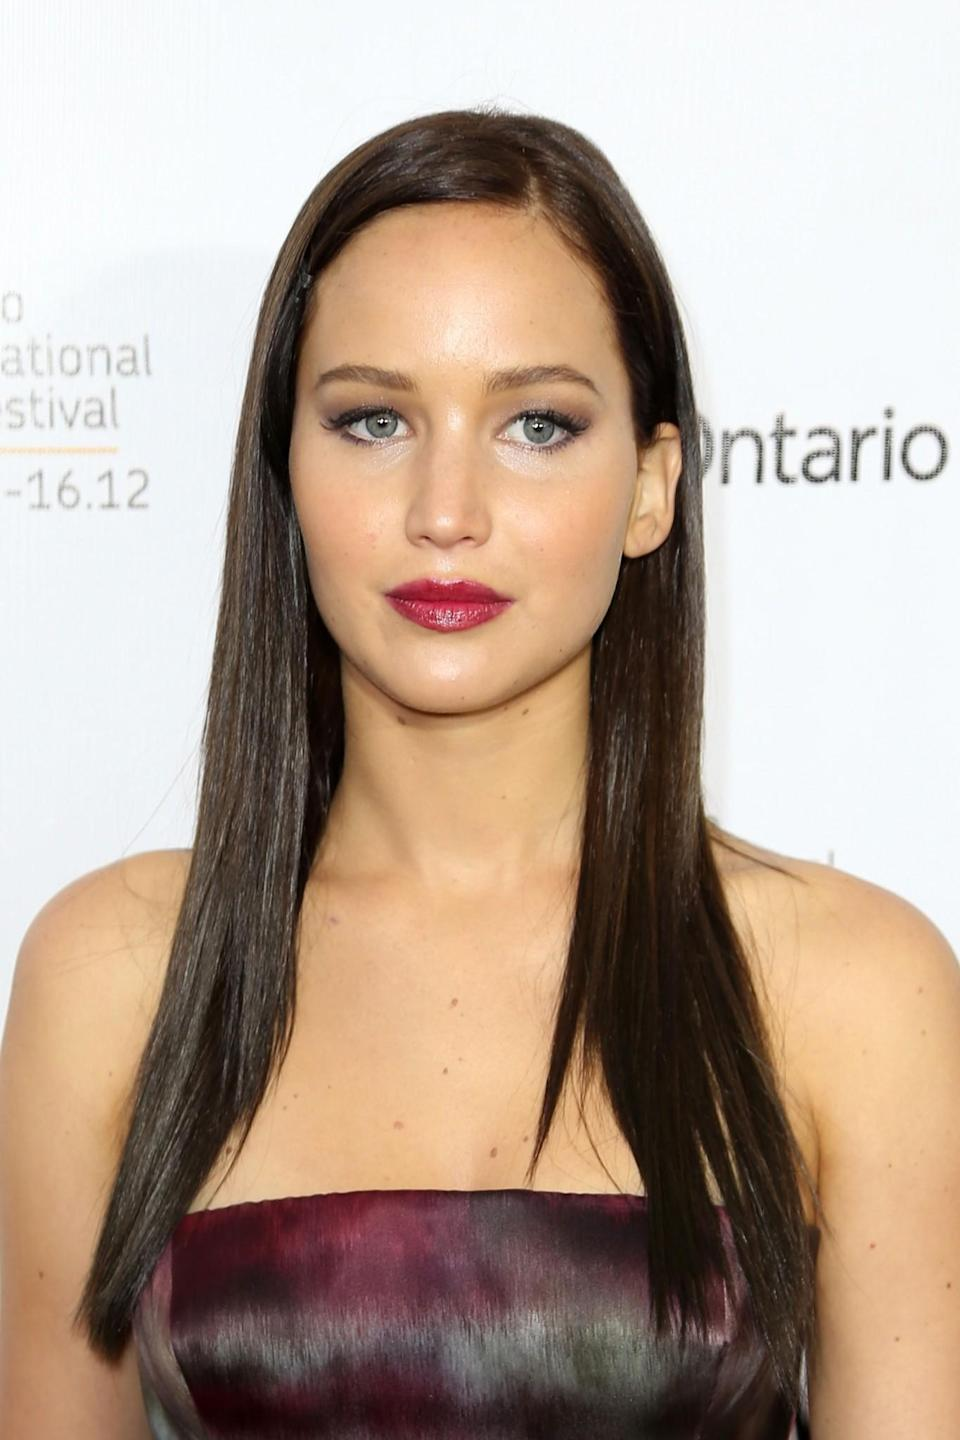 <p>While promoting 'Silver Linings Playbook', Jennifer looked very similar to model Bella Hadid with her long, straight dark hair. [Photo: Getty] </p>